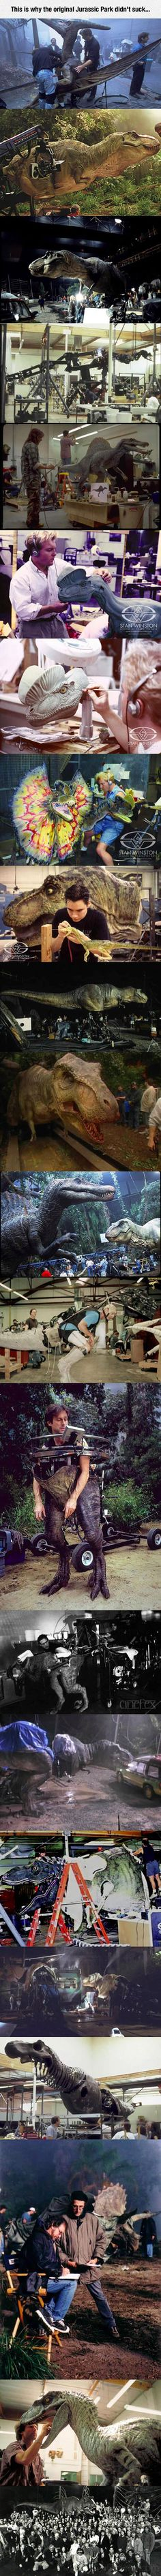 After seeing the first Jurassic Park, I always had dreams of being in the era where they still roamed the earth. I appreciate this dreams now that I am older!